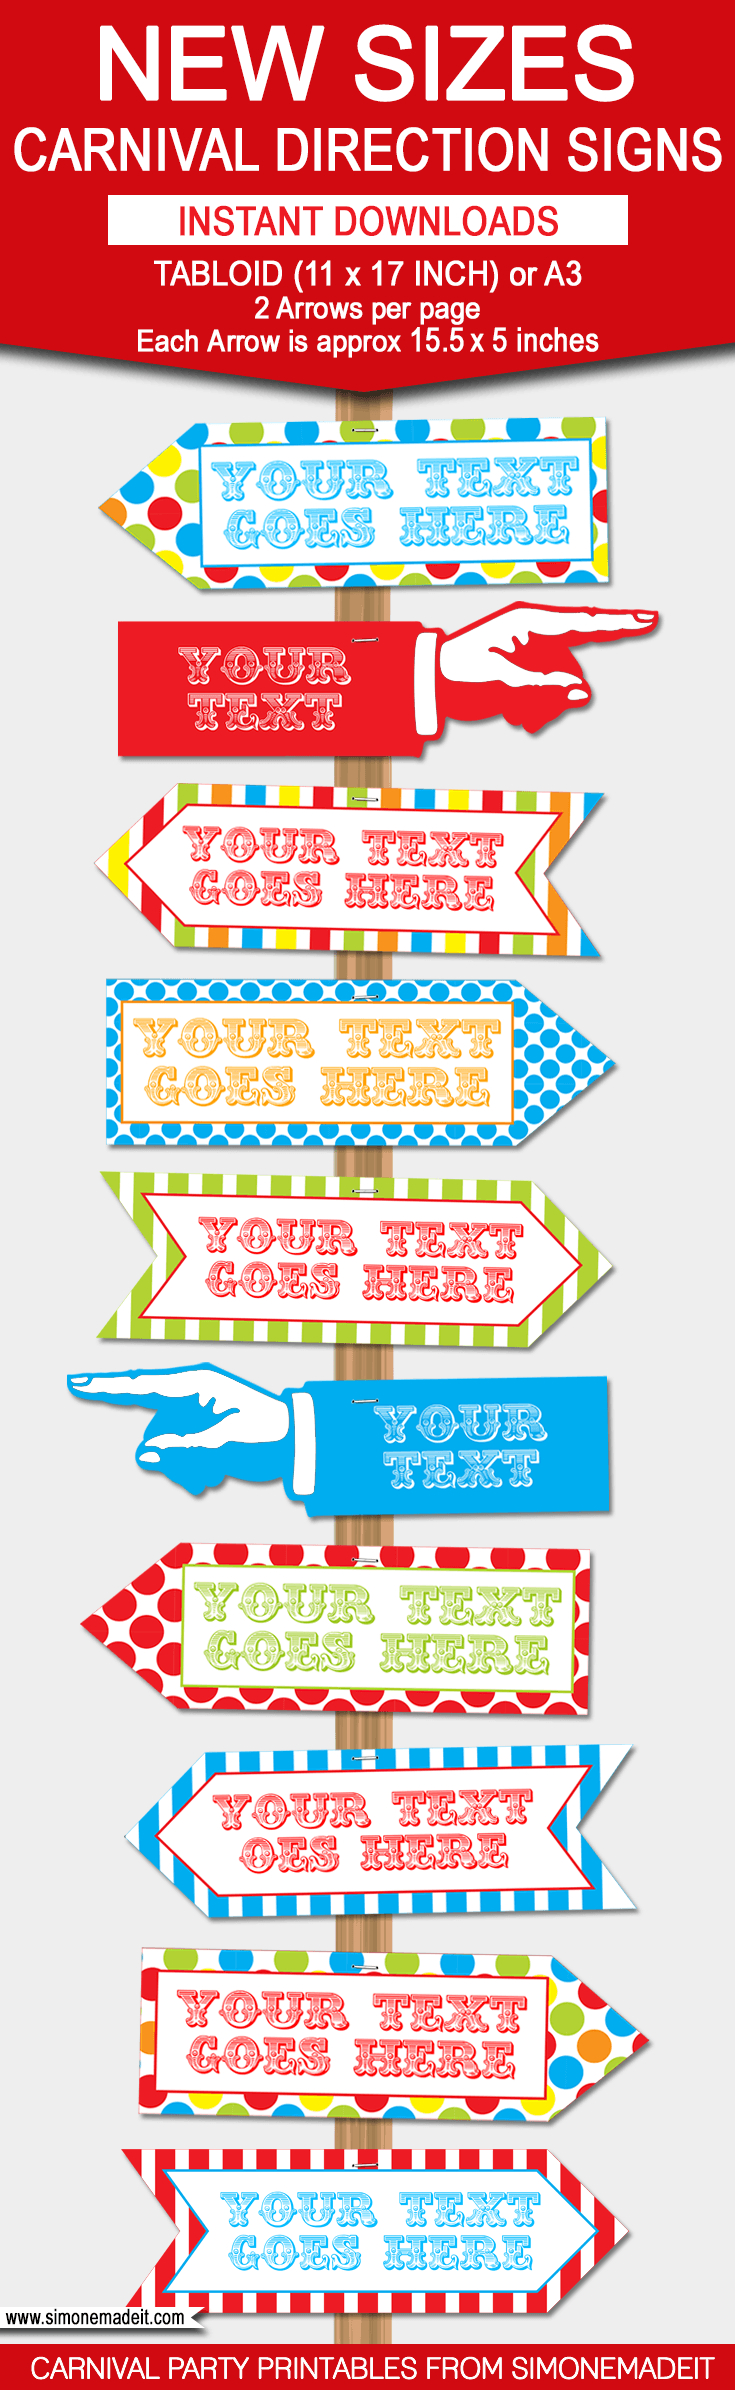 Carnival Directional Sign Templates – New Sizes! | Circus/carnival - Free Printable Carnival Decorations